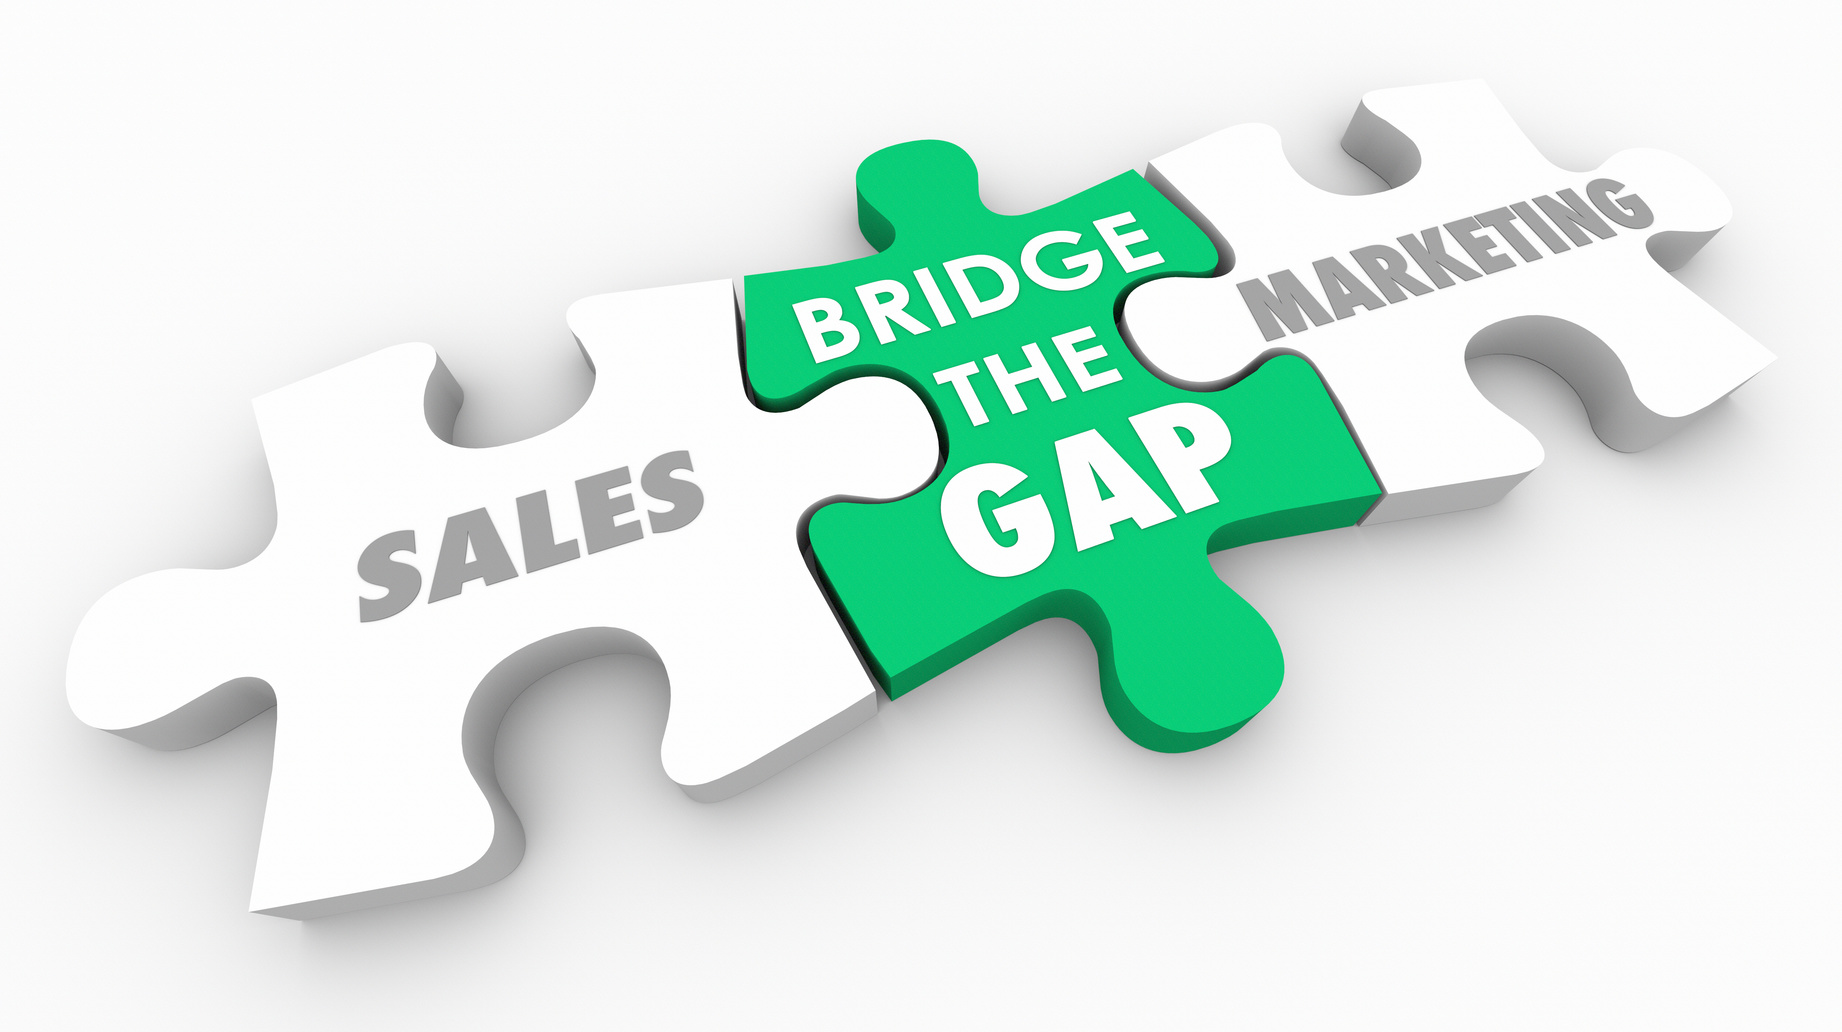 Qualifying leads is the difference between data and sales